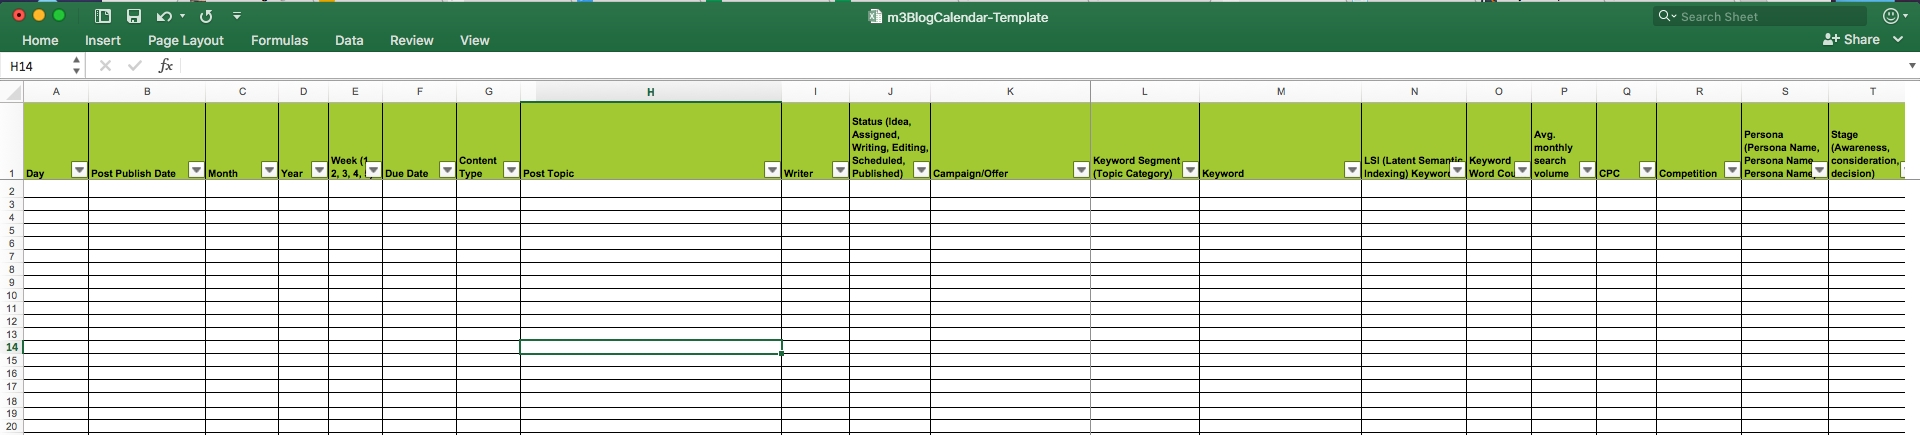 Editorial Calendar Templates For Content Marketing: The Ultimate List for Social Media Posting Calendar Template Free Printable Excel